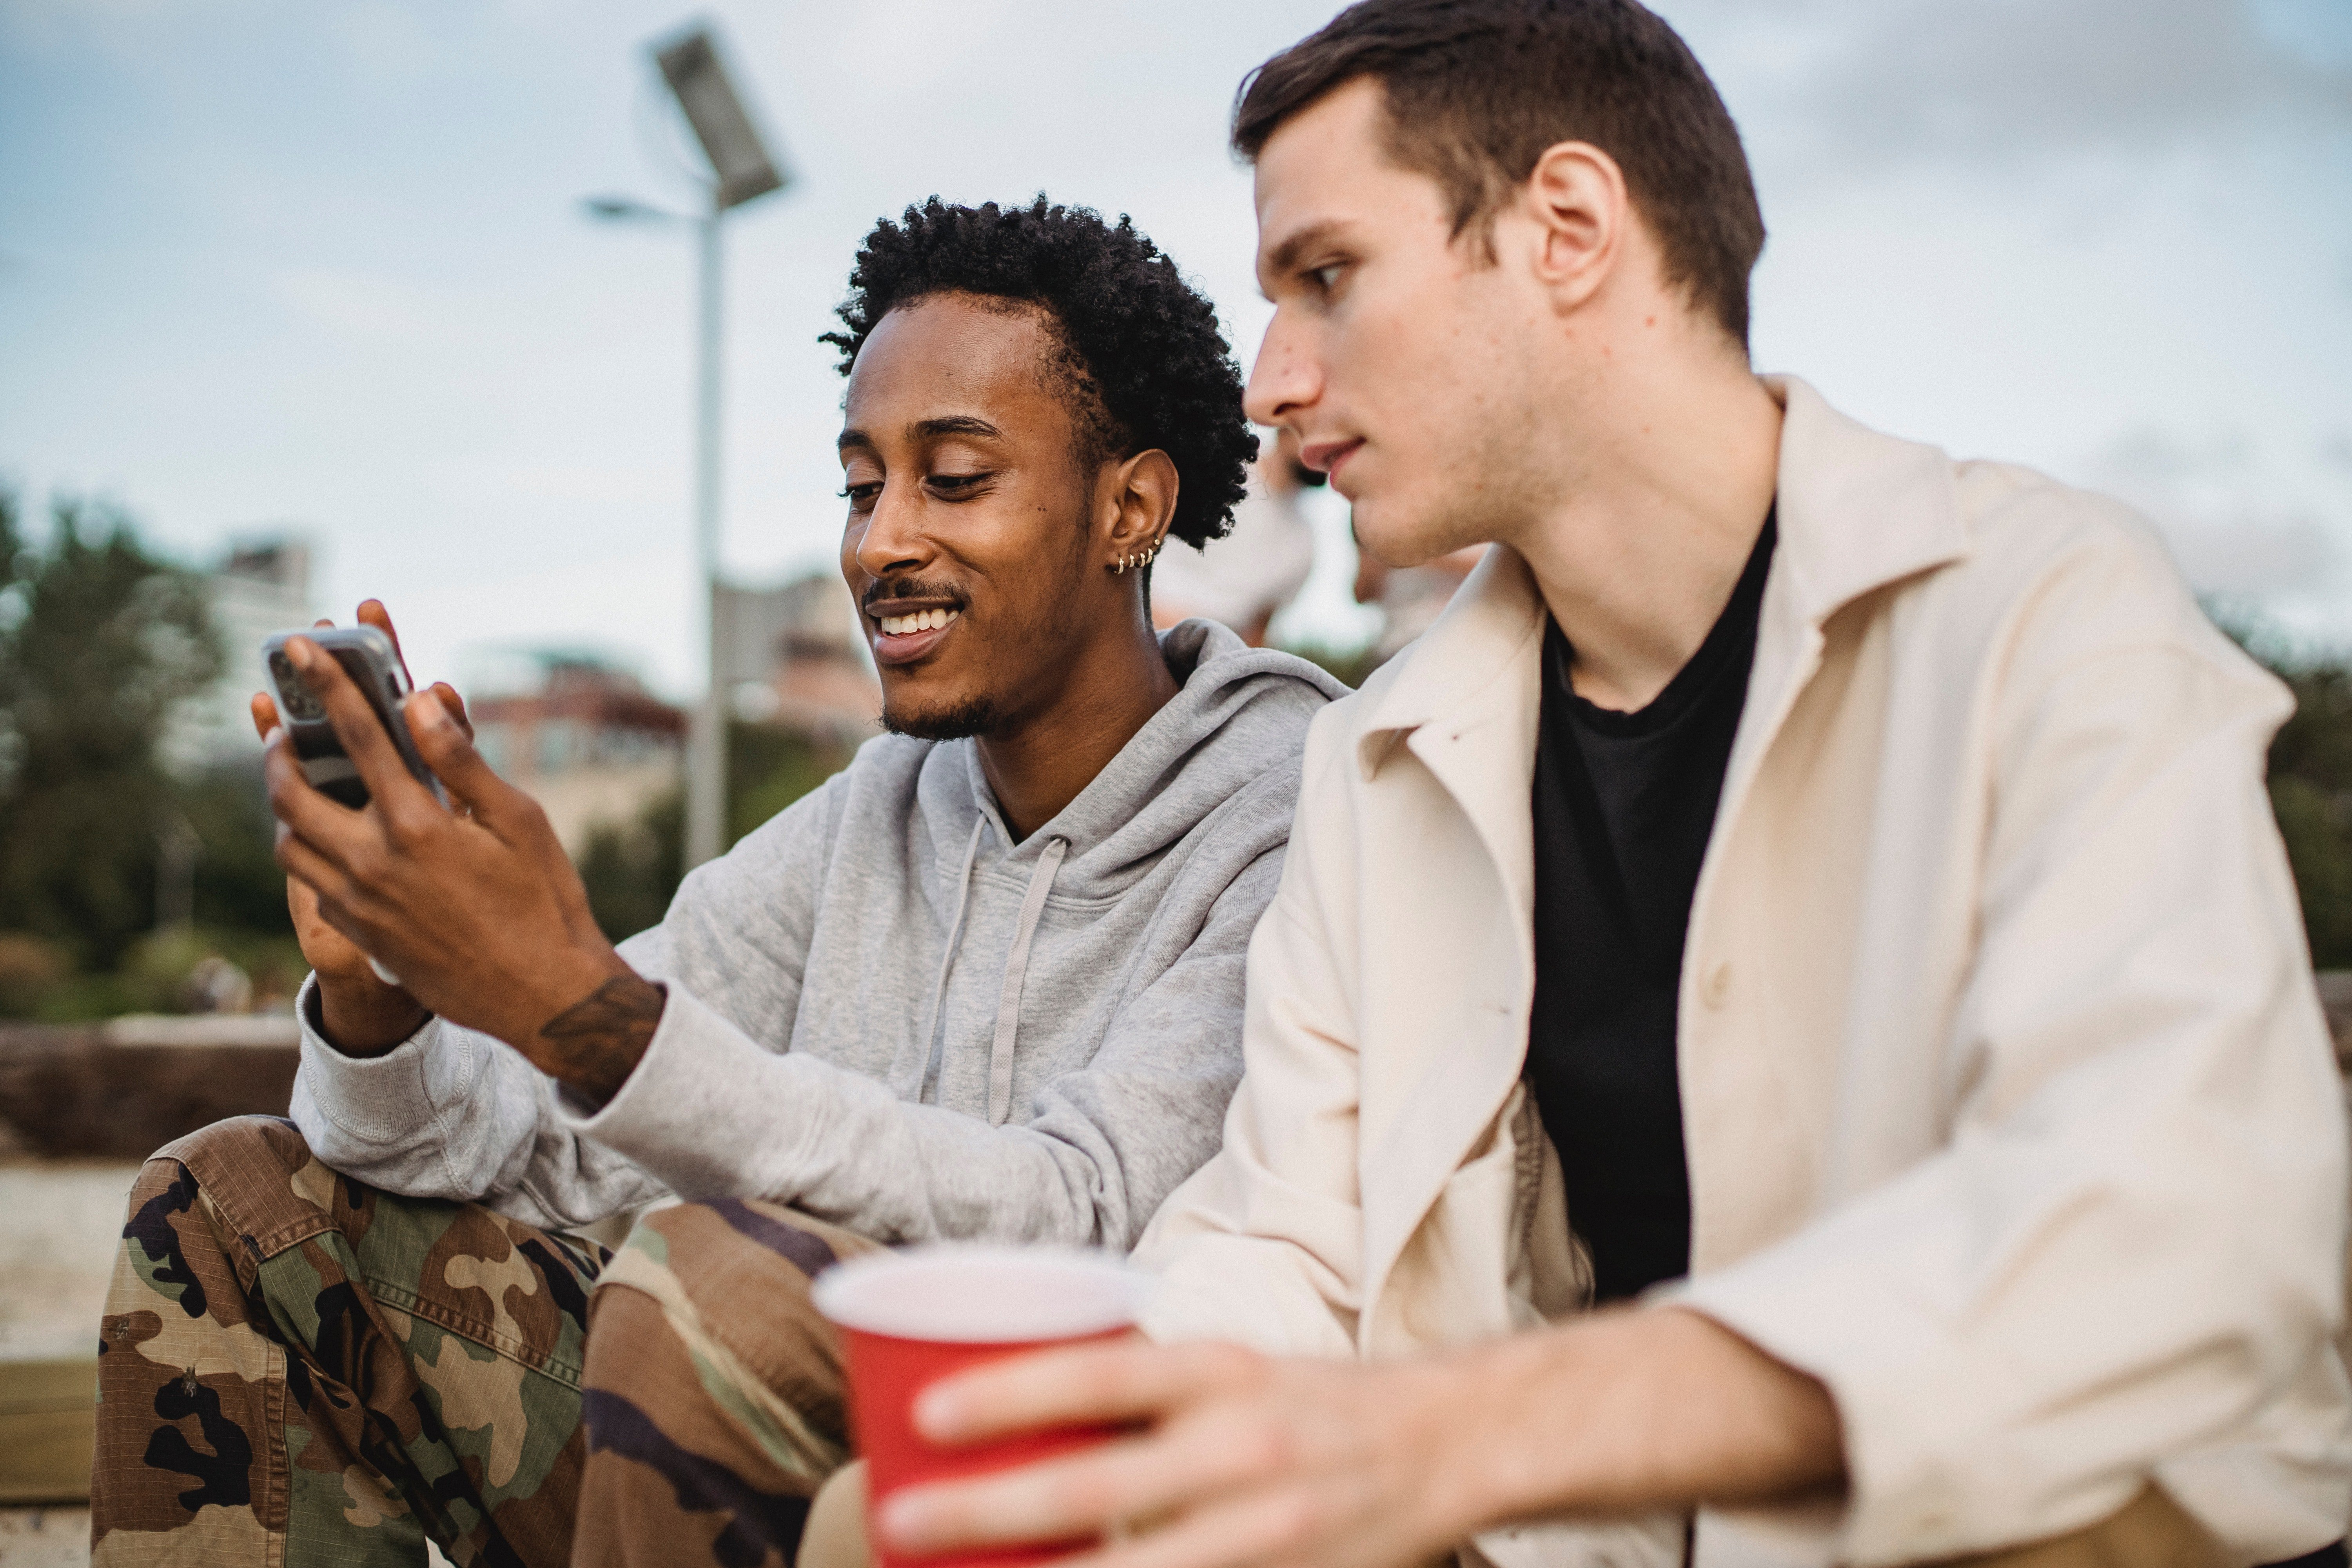 Cheerful man showing his phone to a friend  | Photo: Pexels